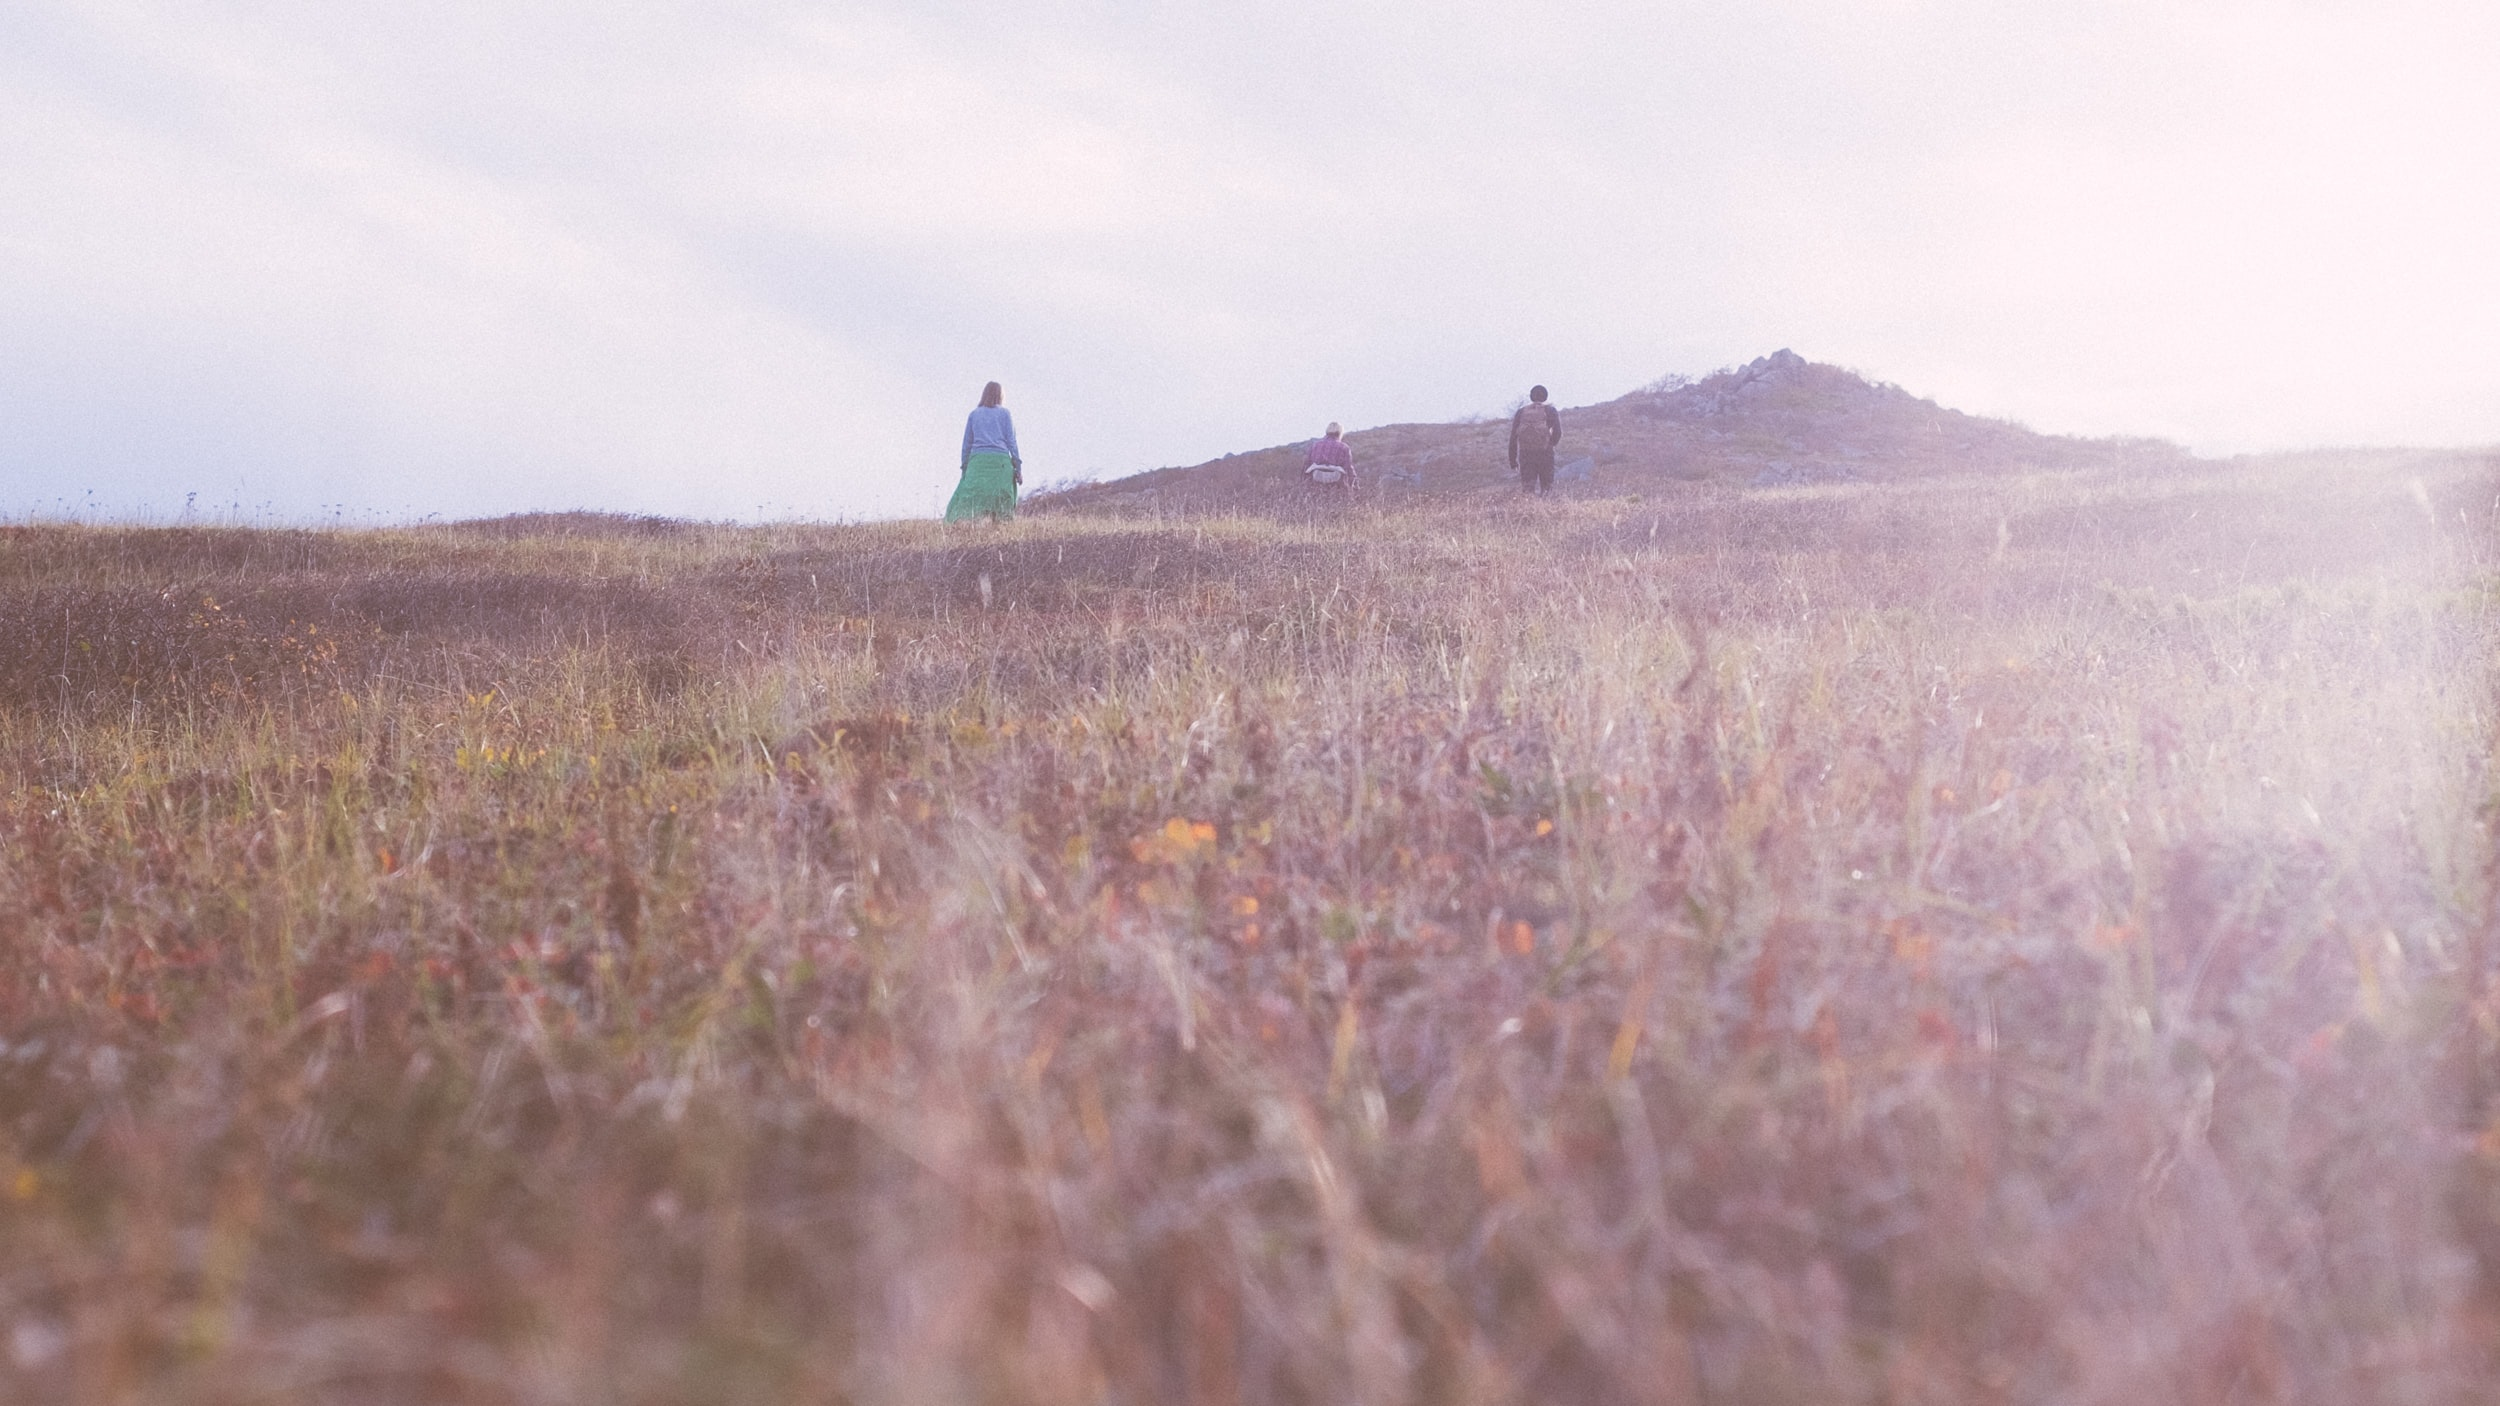 person standing surrounded by grass under cloudy sky